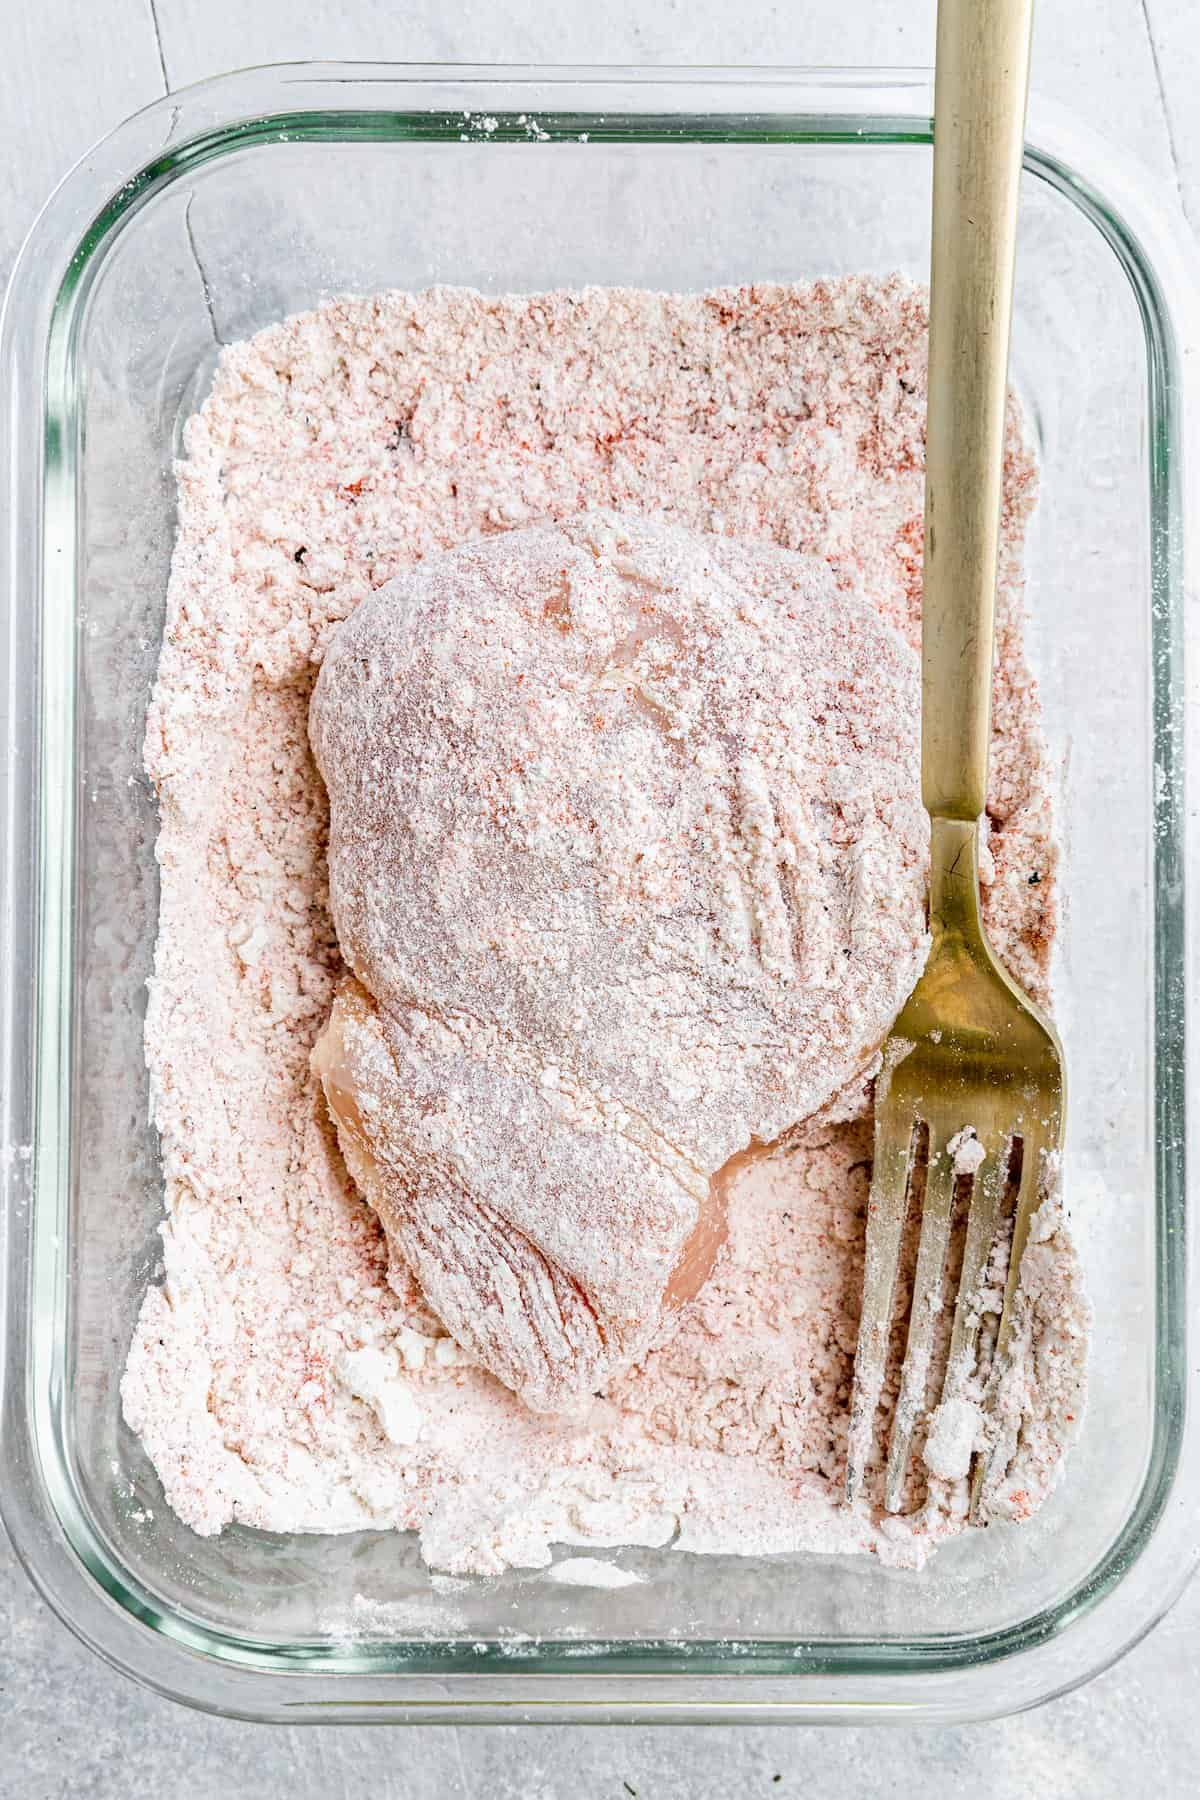 A Chicken Breast Coated in the Flour Mixture Beside a Gold Fork